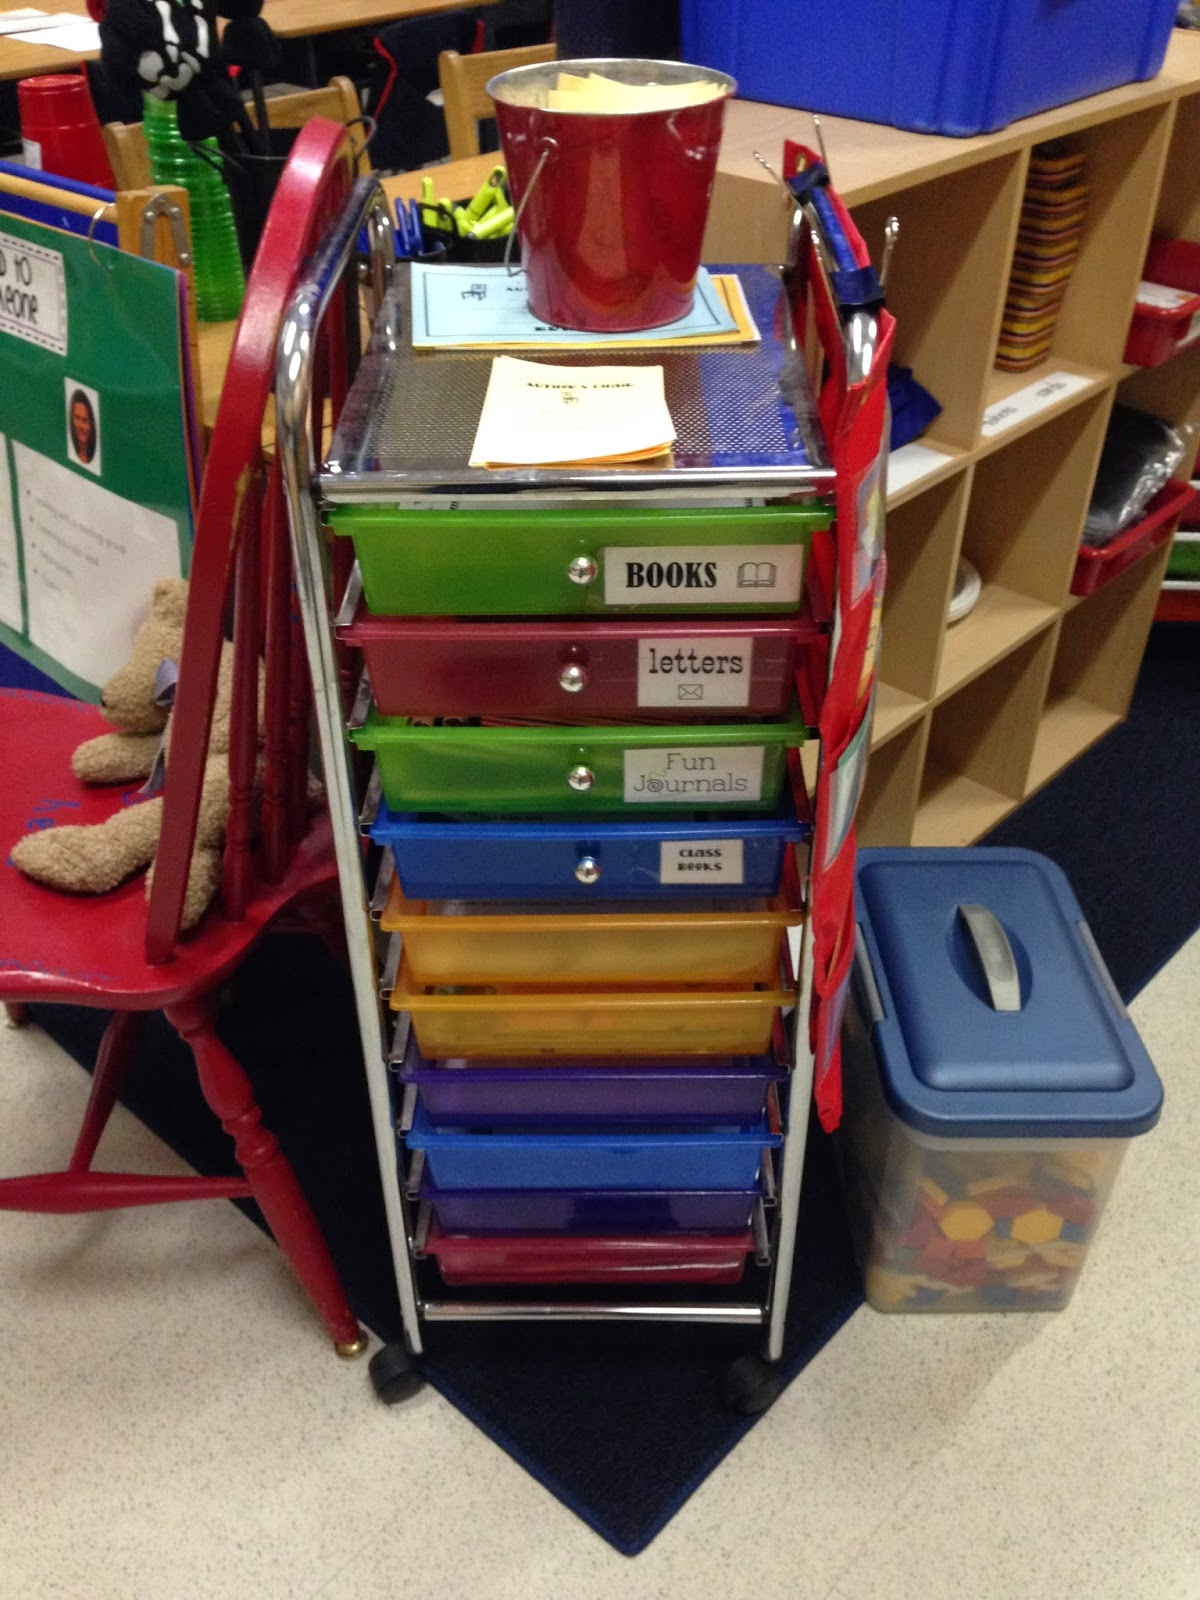 Guest blog post from Jaime at The First Grade Bloom who shares with us some Classroom Cart Organization tips!